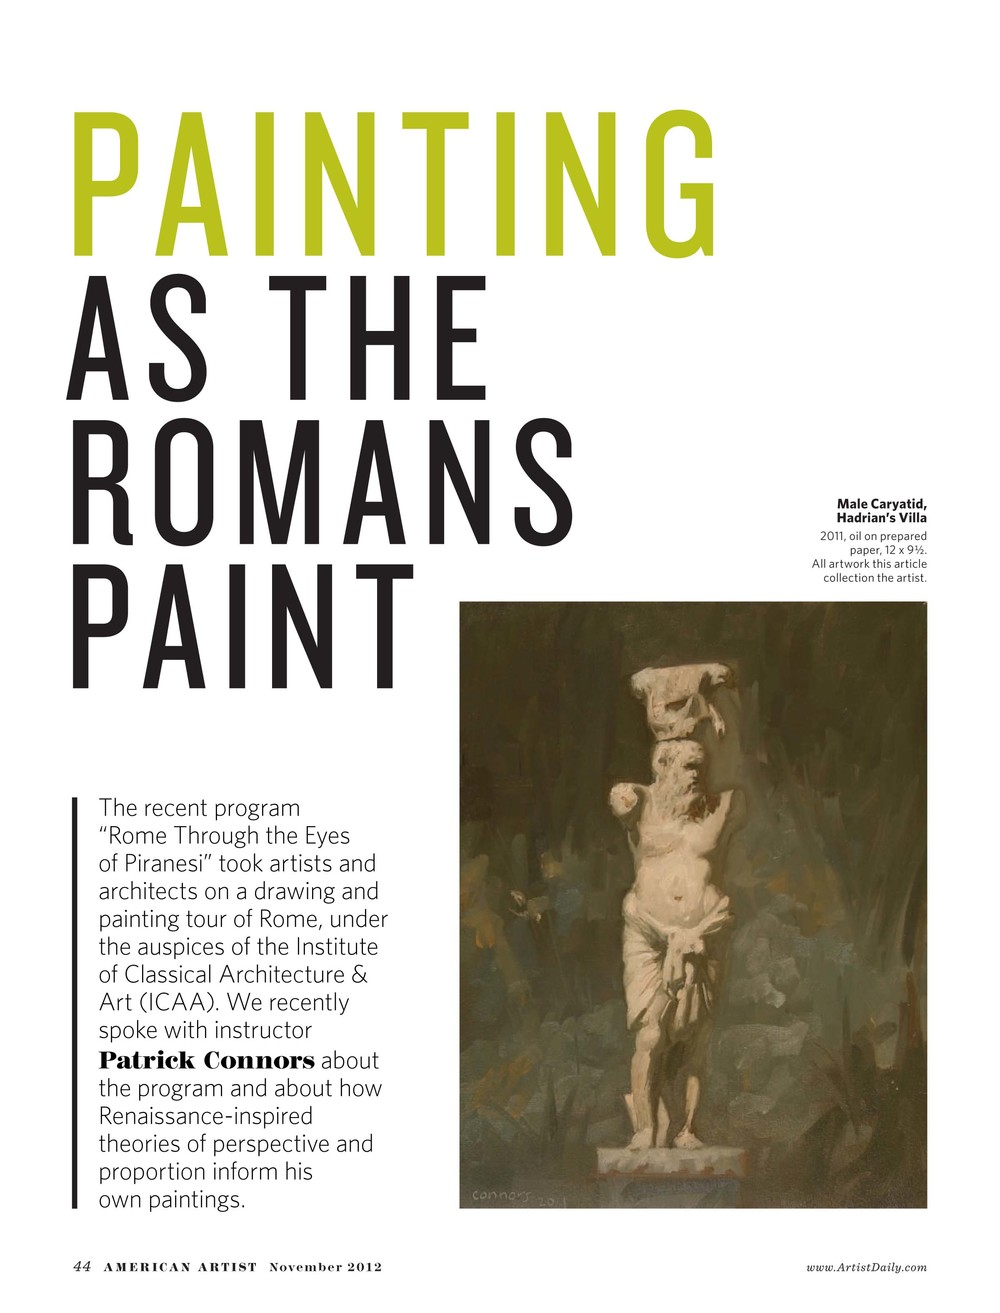 2012 November American Artist Painting as the Romans Paint-1.jpg